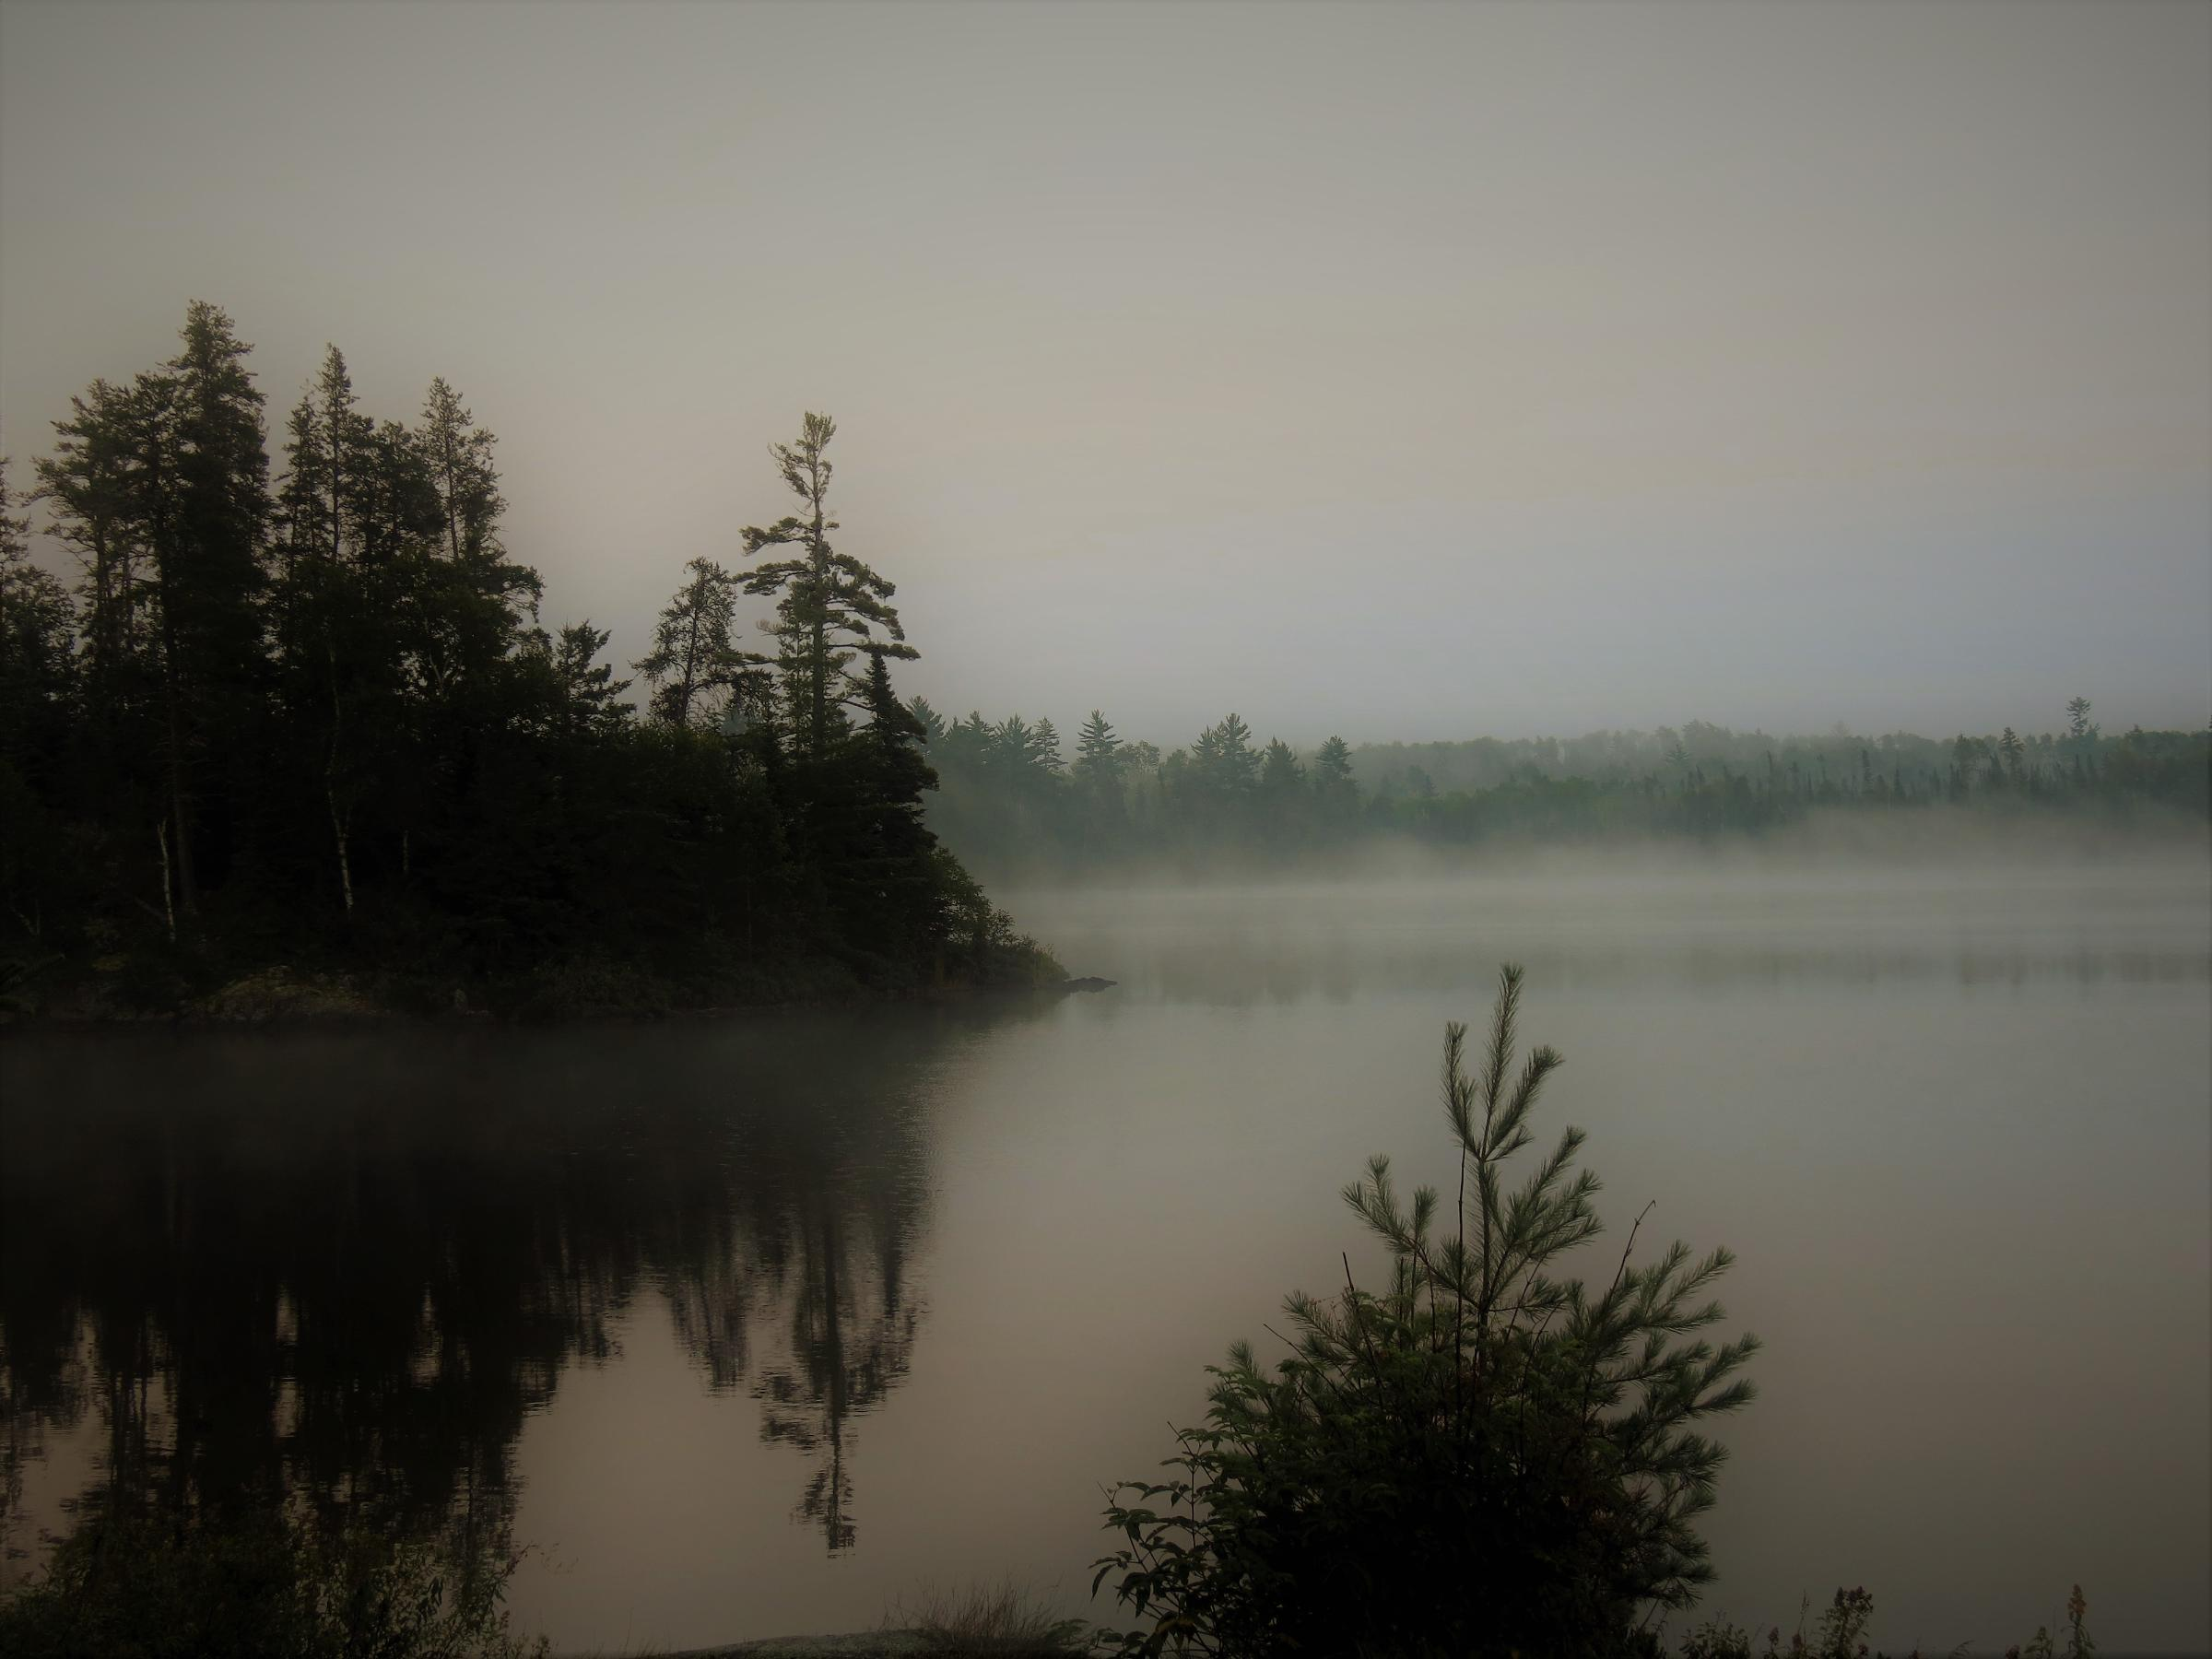 A. Foggy morning on Lake Disappointment